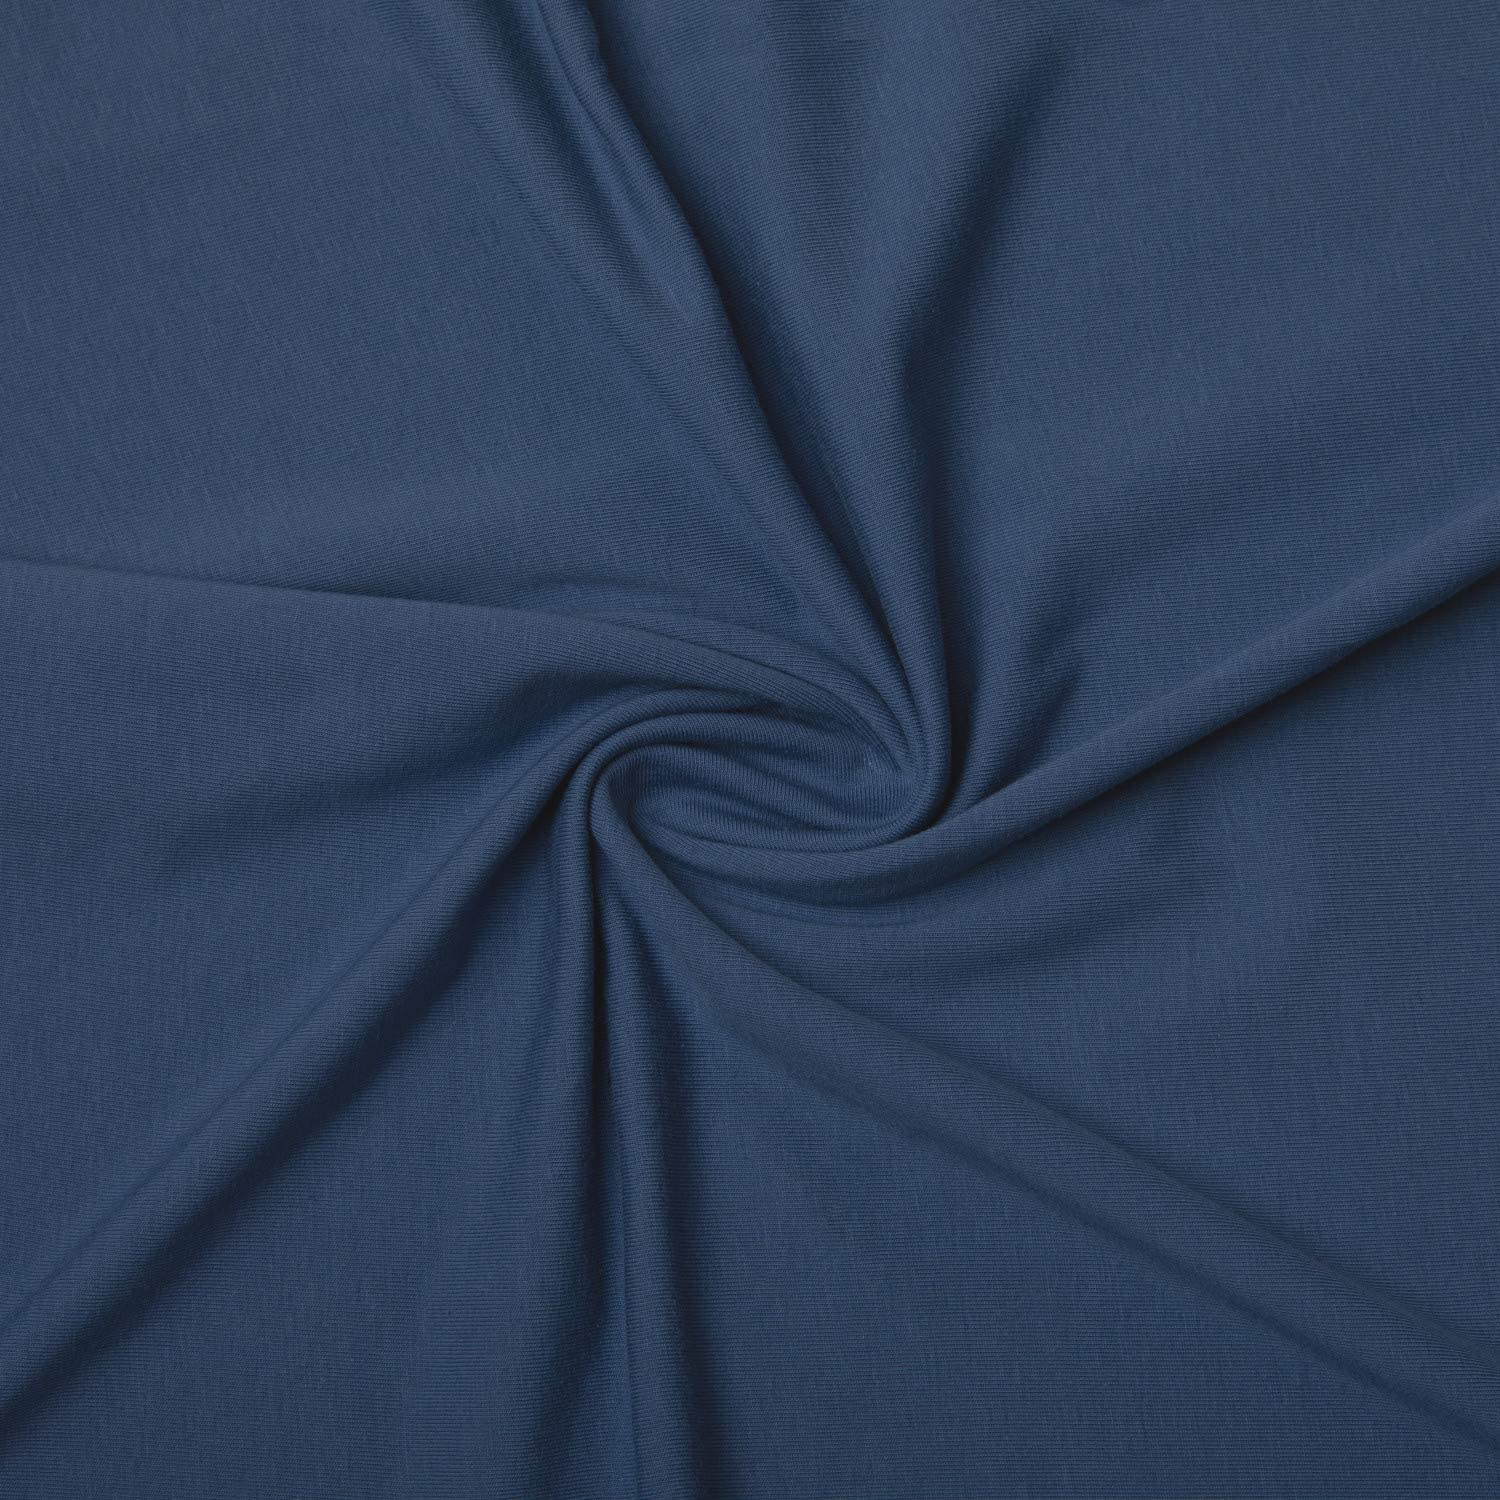 Ambesonne Jersey Knit Fabric by The Yard Dressable Soft Turkish Combed Cotton DIY, 5 Yards, Slate Blue